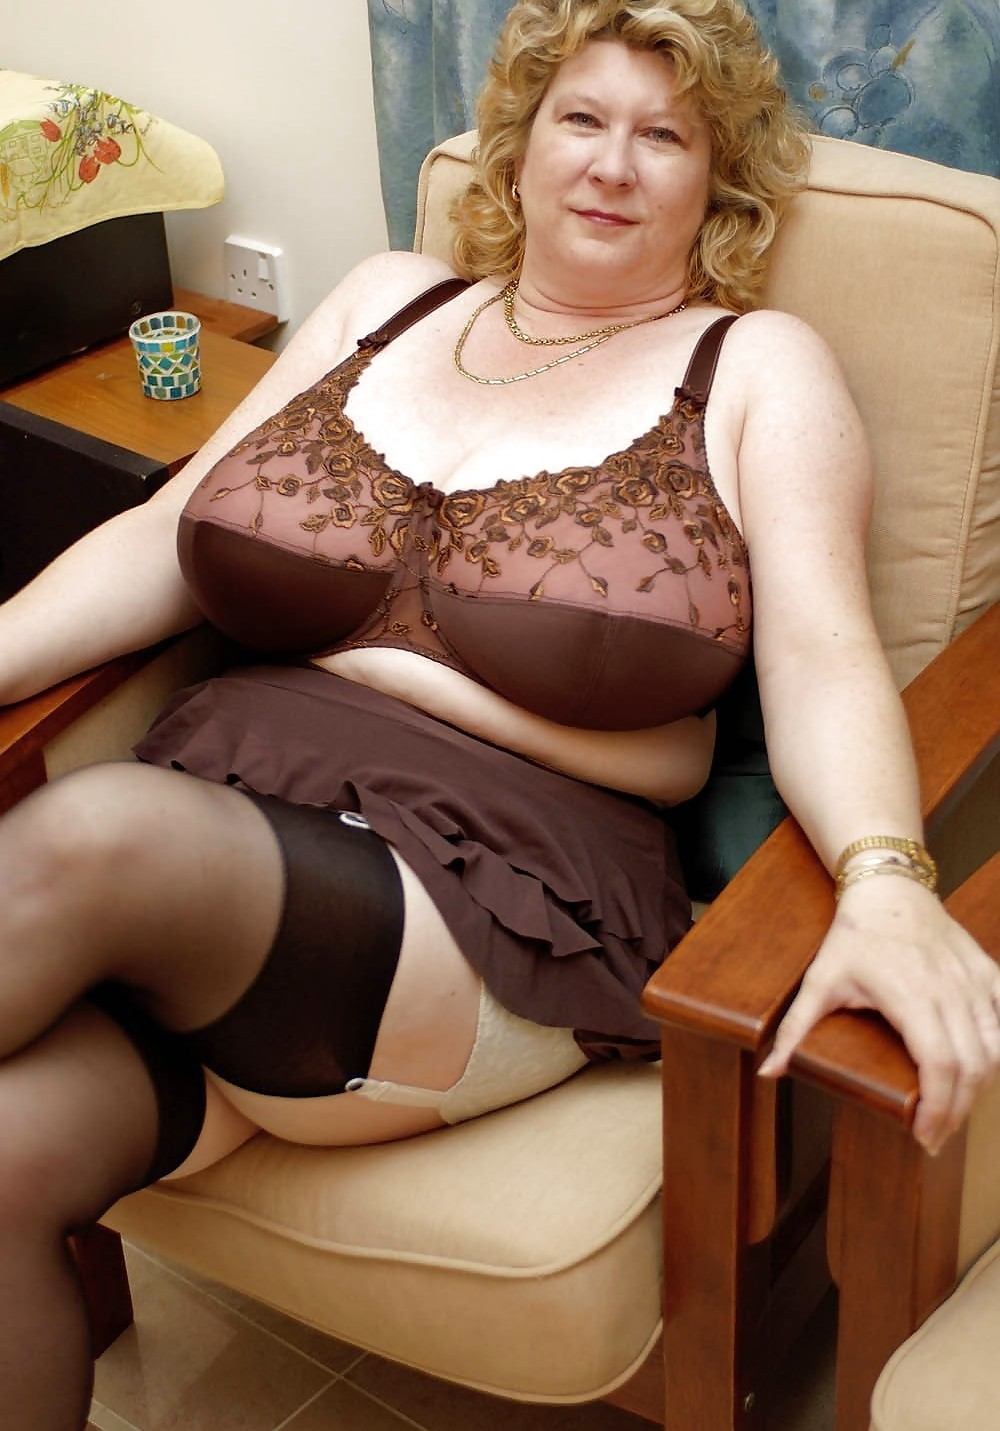 Think, Mature bbw girdle and stockings